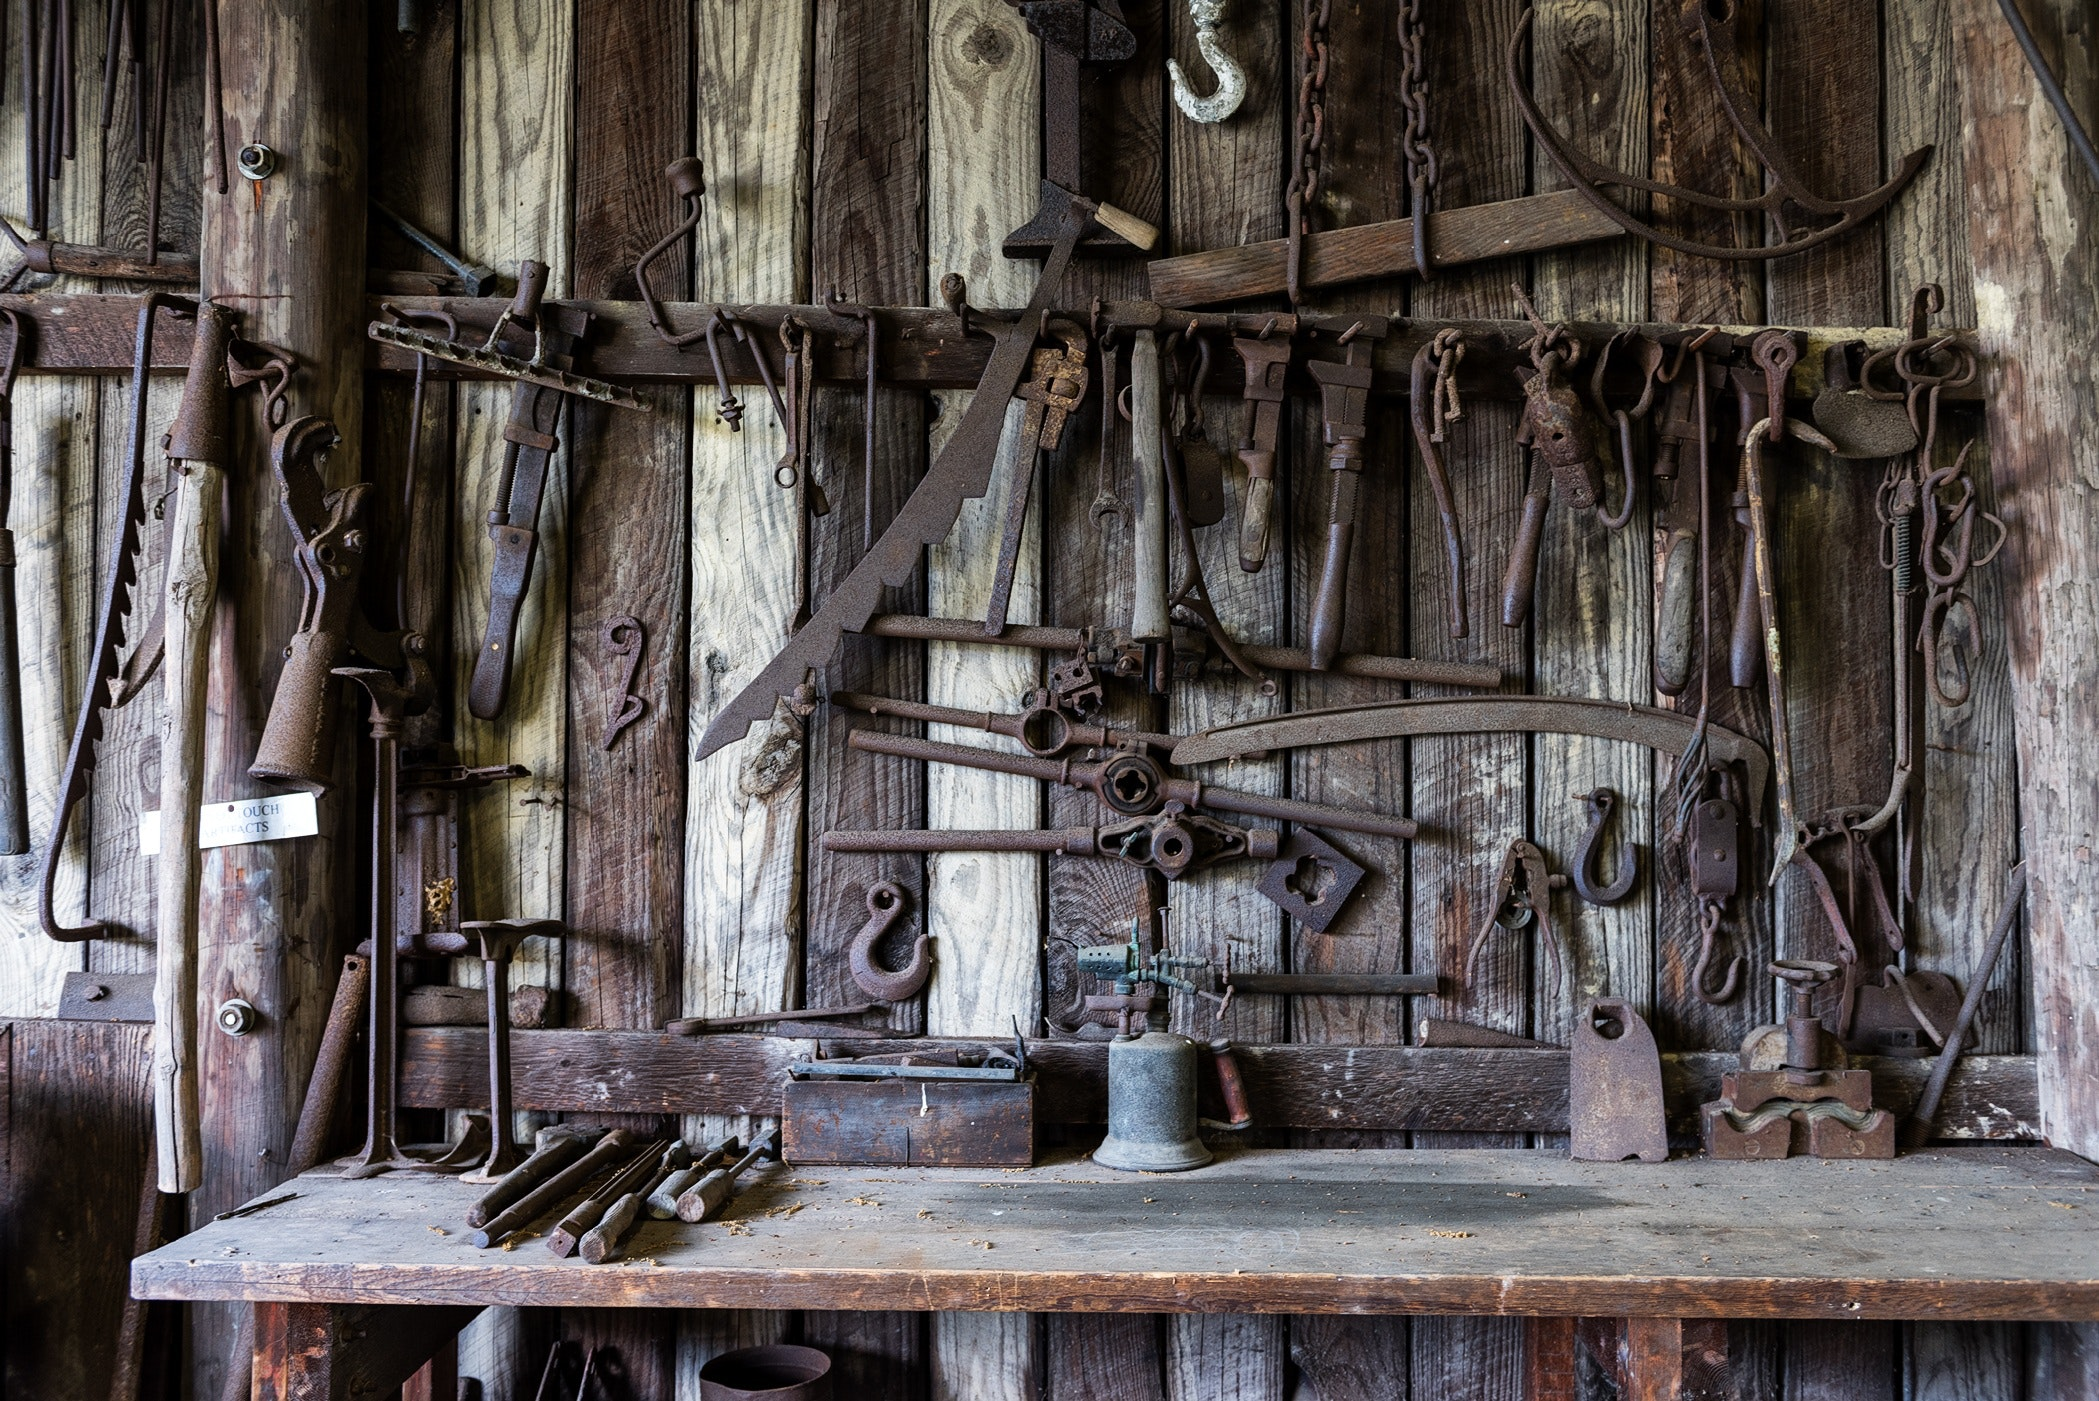 Black Metal Tools Hanged on a Rack Near Table, Craft, Monochrome, Old, Rust, HQ Photo